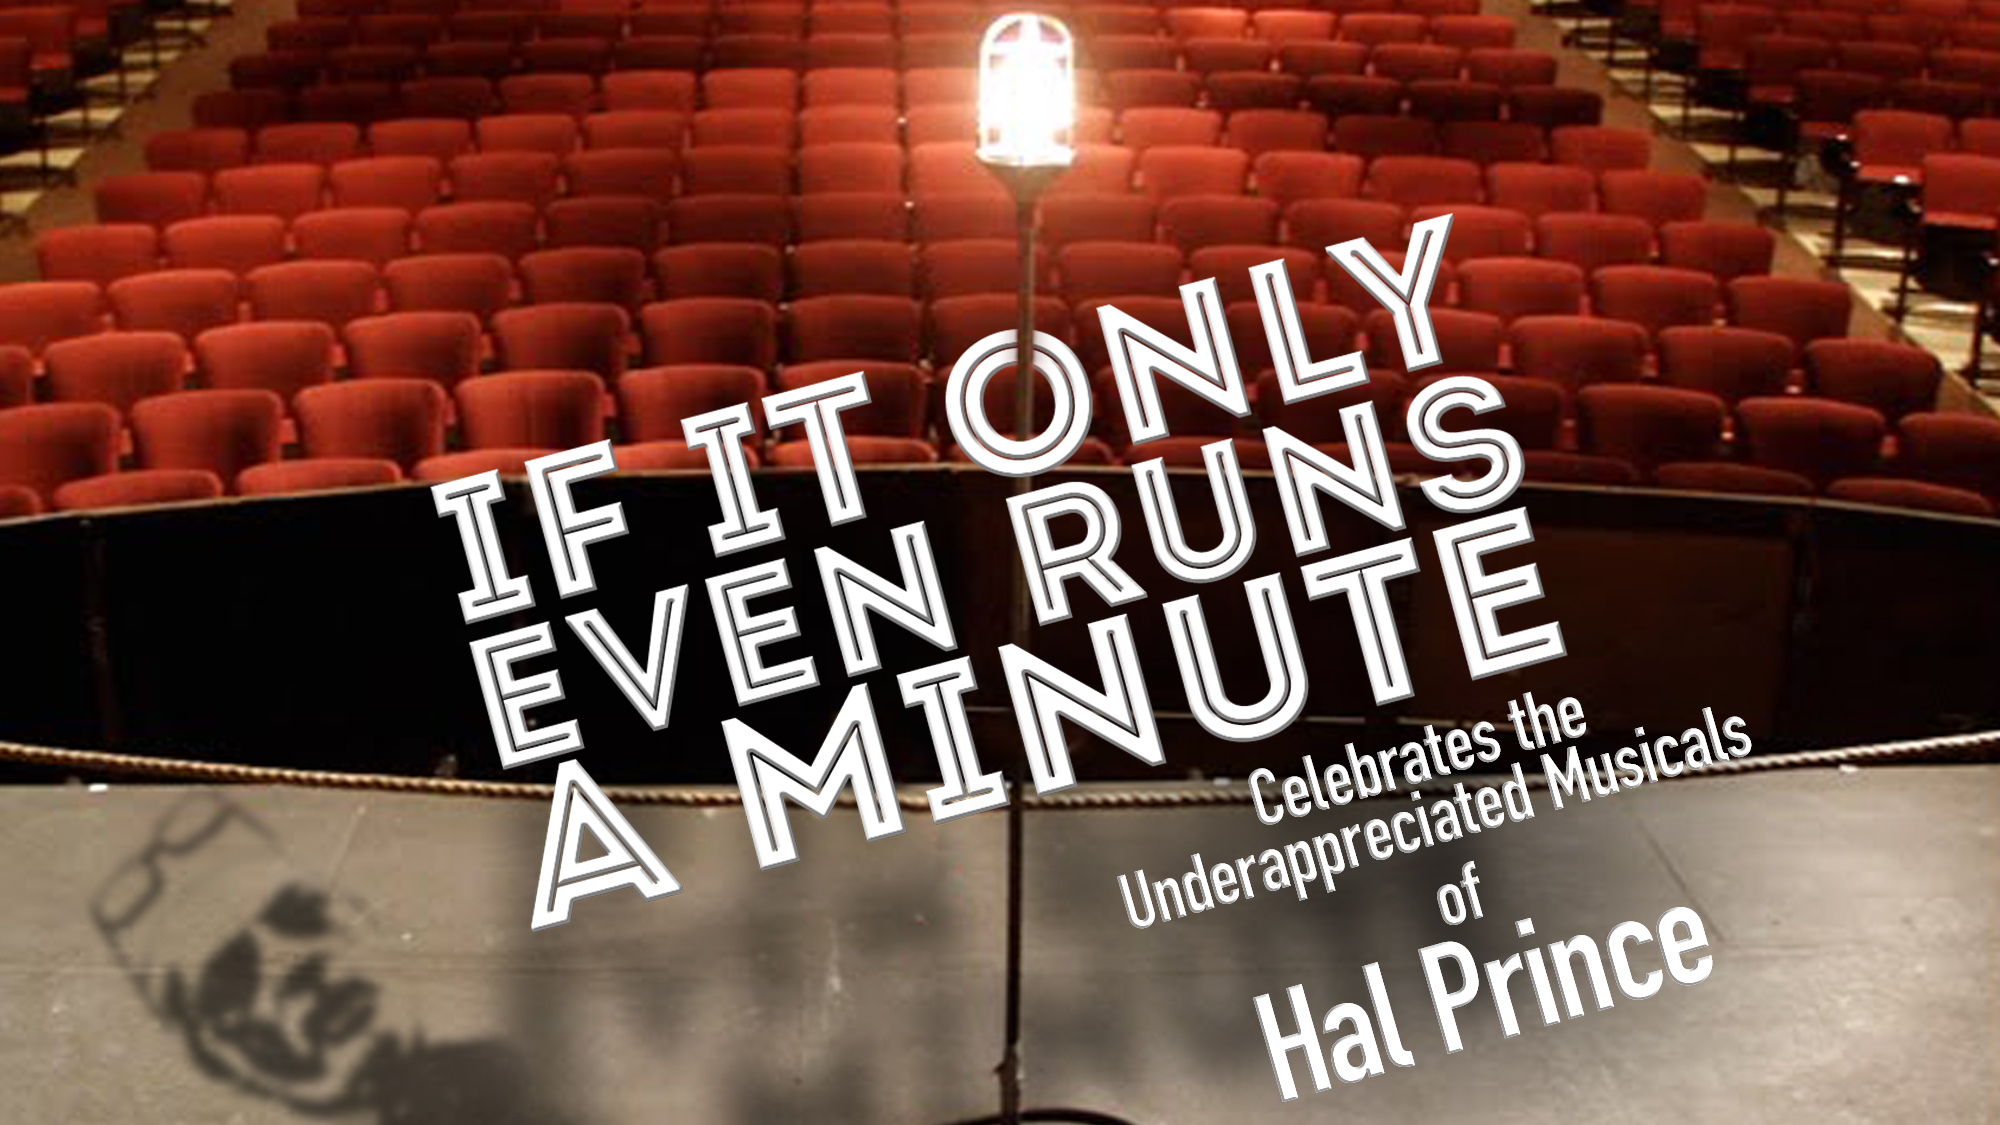 If It Only Even Runs A Minute Celebrates The Underappreciated Musicals of Hal Prince